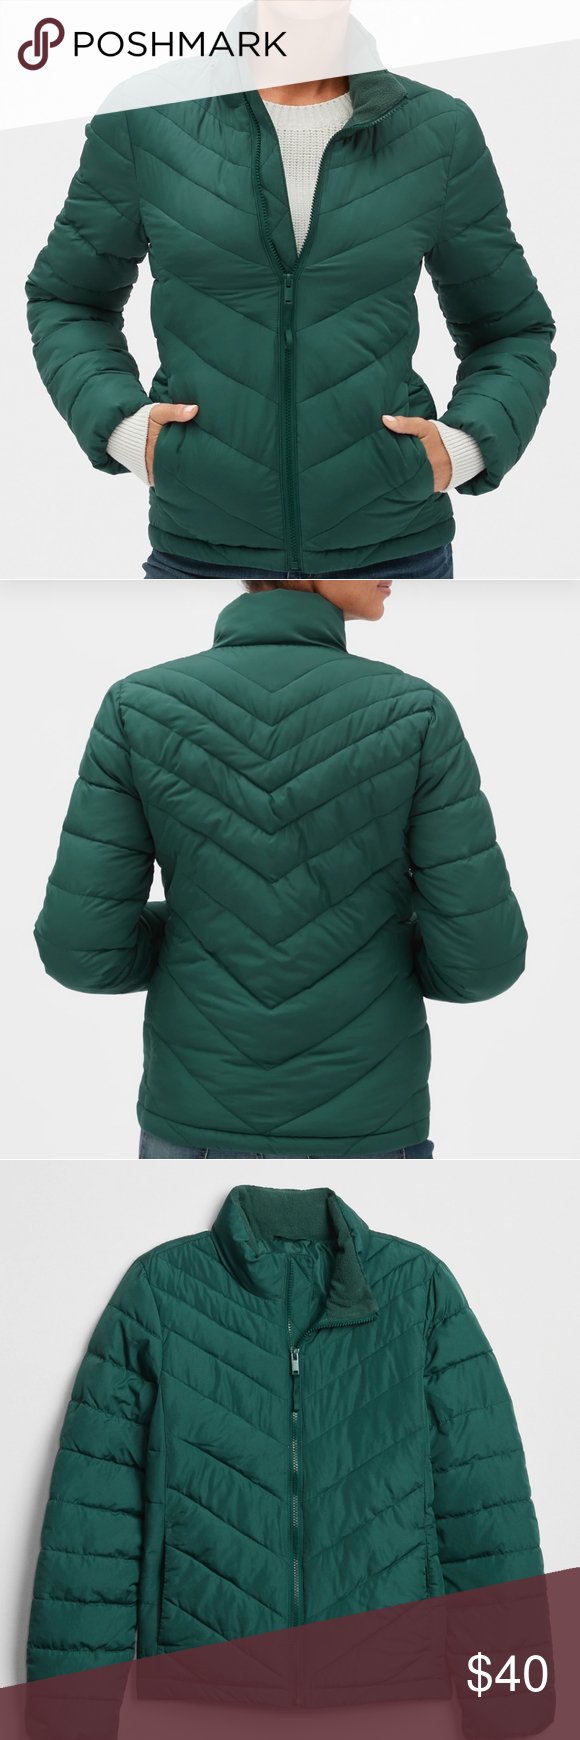 Lightweight Puffer Jacket Fit Sizing Straight Silhouette With A Slim Fit Hits At The Hip Product Details S Jackets Clothes Design Jackets For Women [ 1740 x 580 Pixel ]